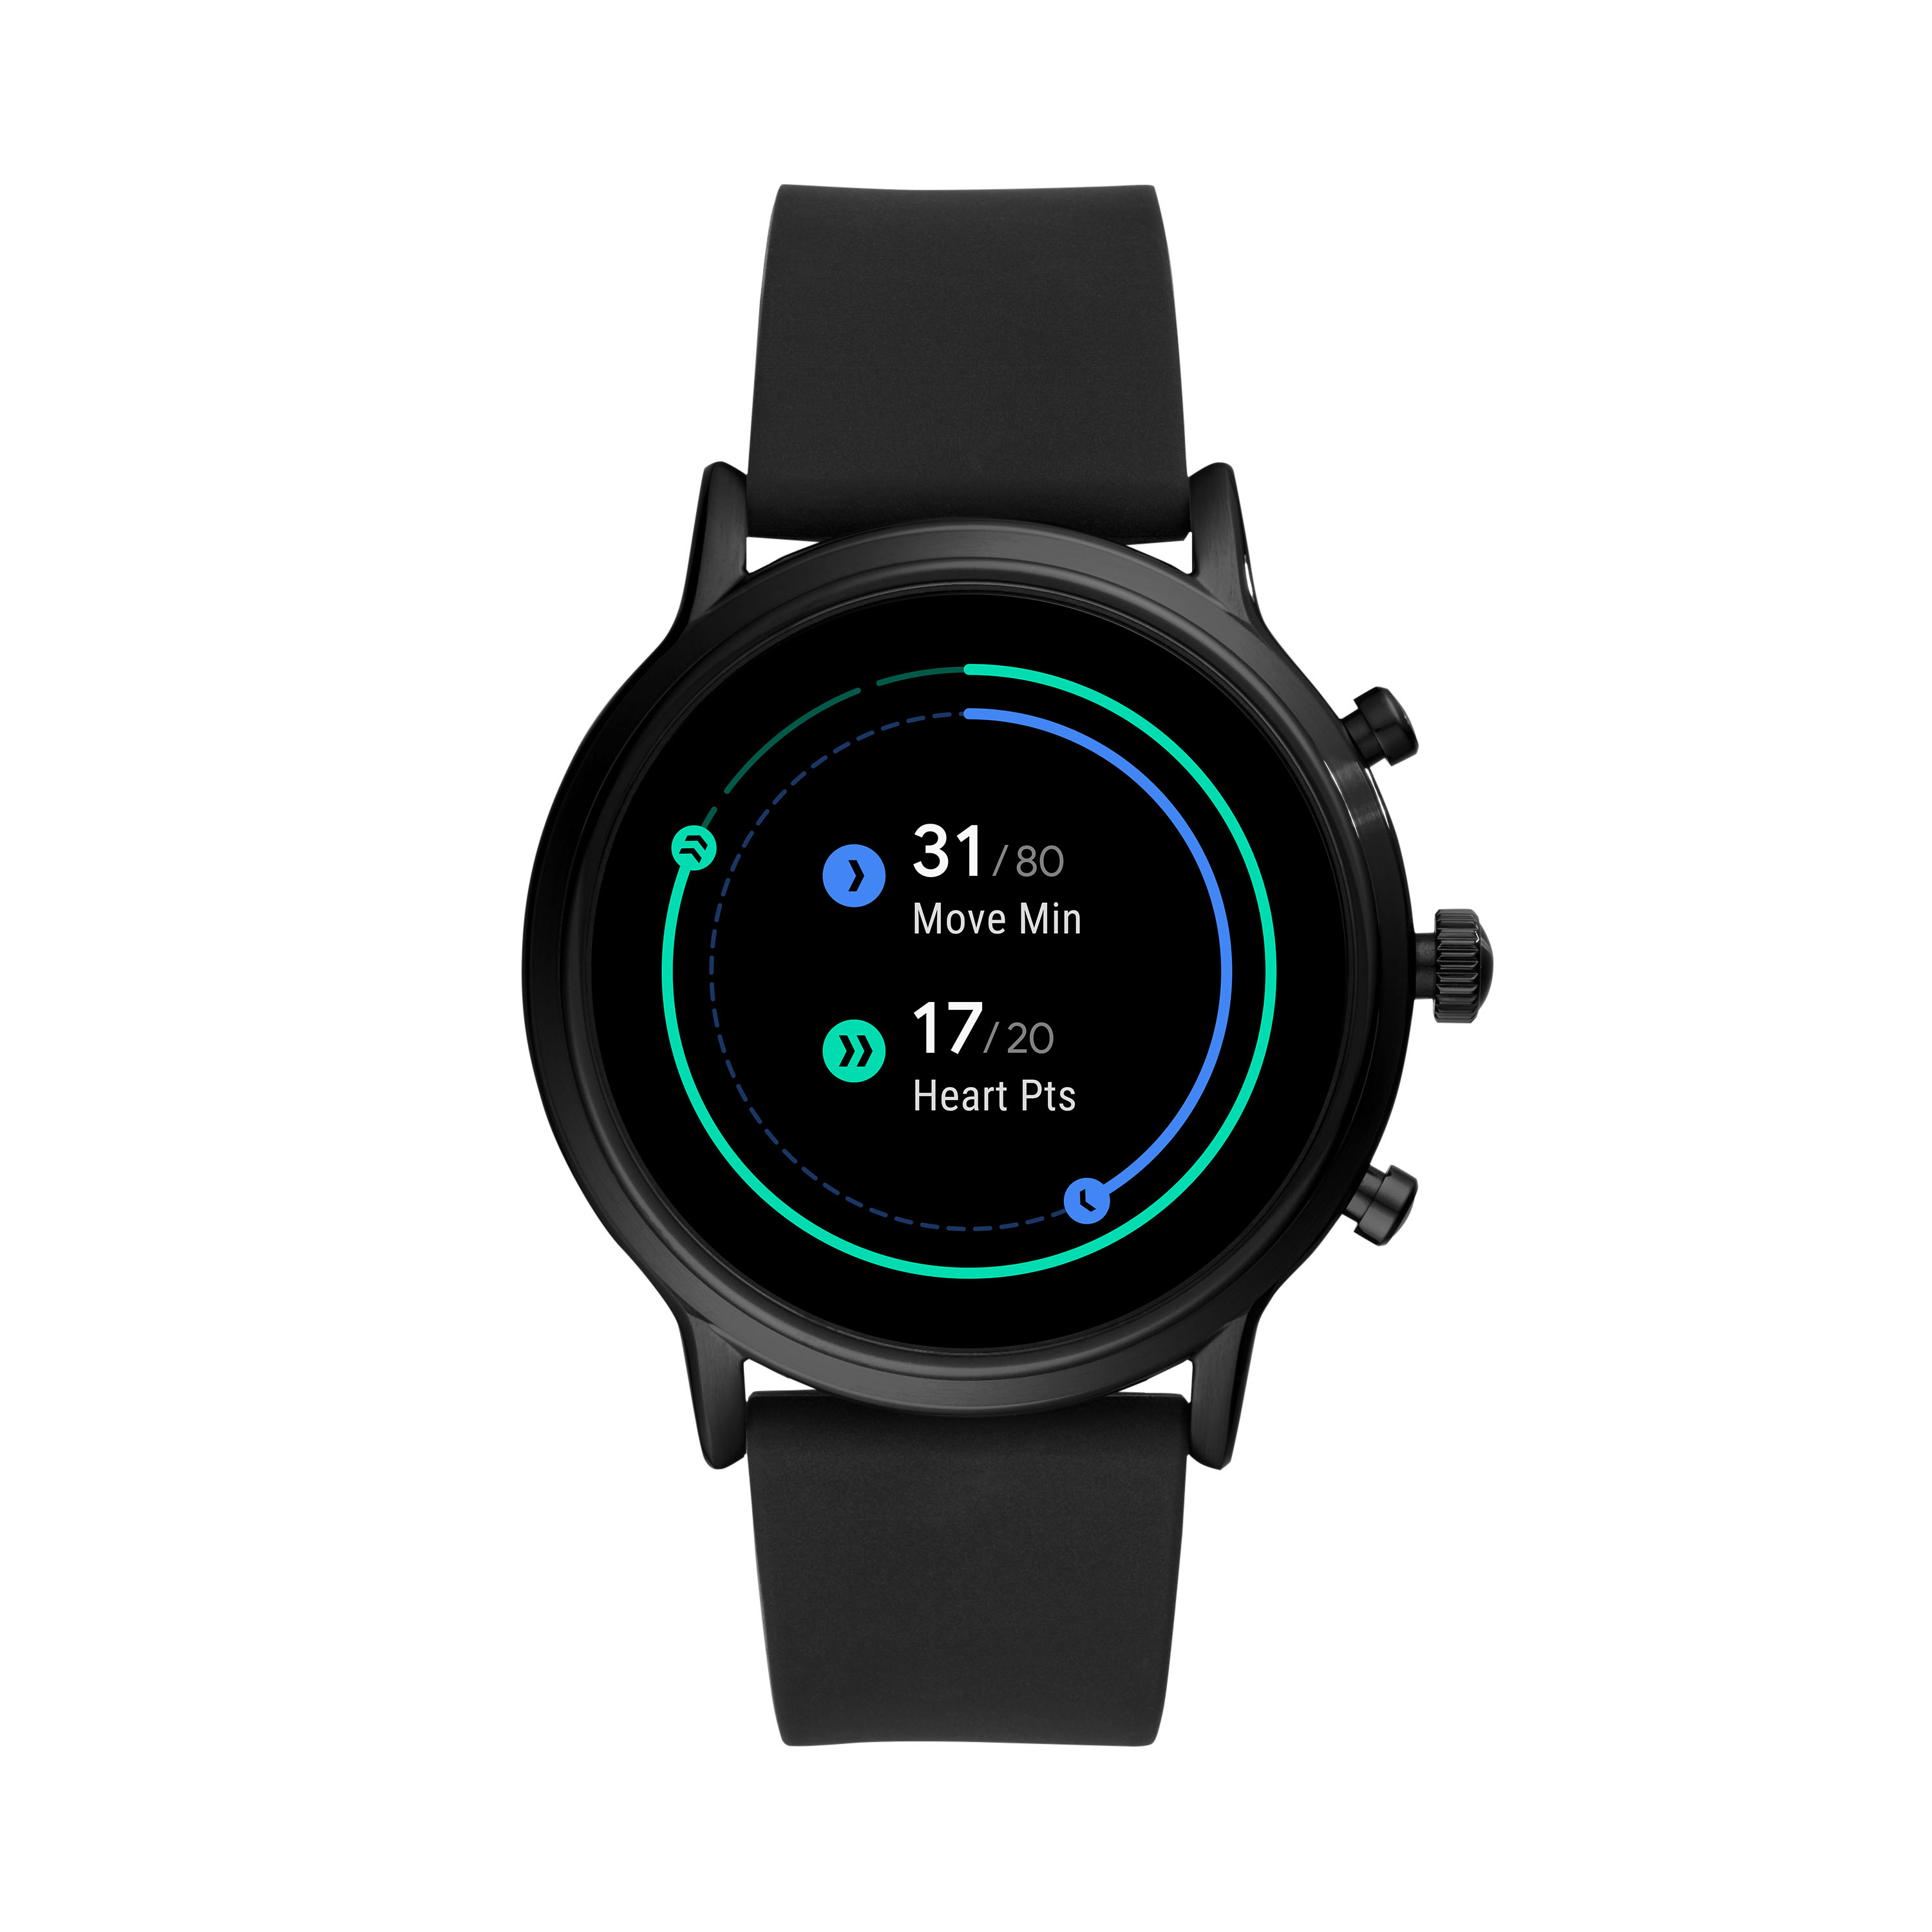 Fossil's New Wear OS Smartwatch Lets iPhone Users Take Calls